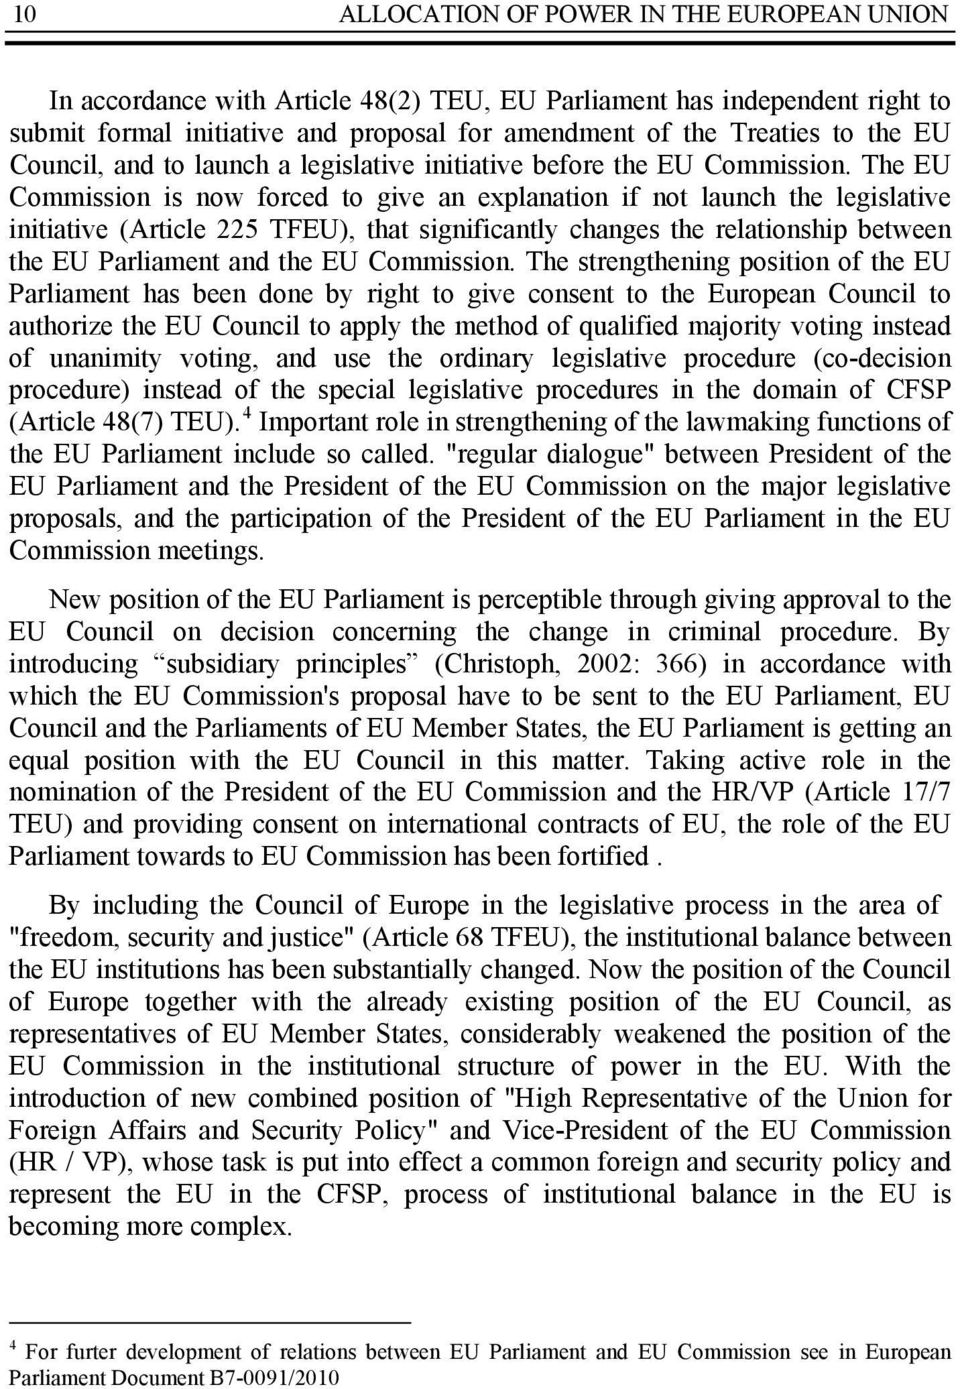 The EU Commission is now forced to give an explanation if not launch the legislative initiative (Article 225 TFEU), that significantly changes the relationship between the EU Parliament and the EU